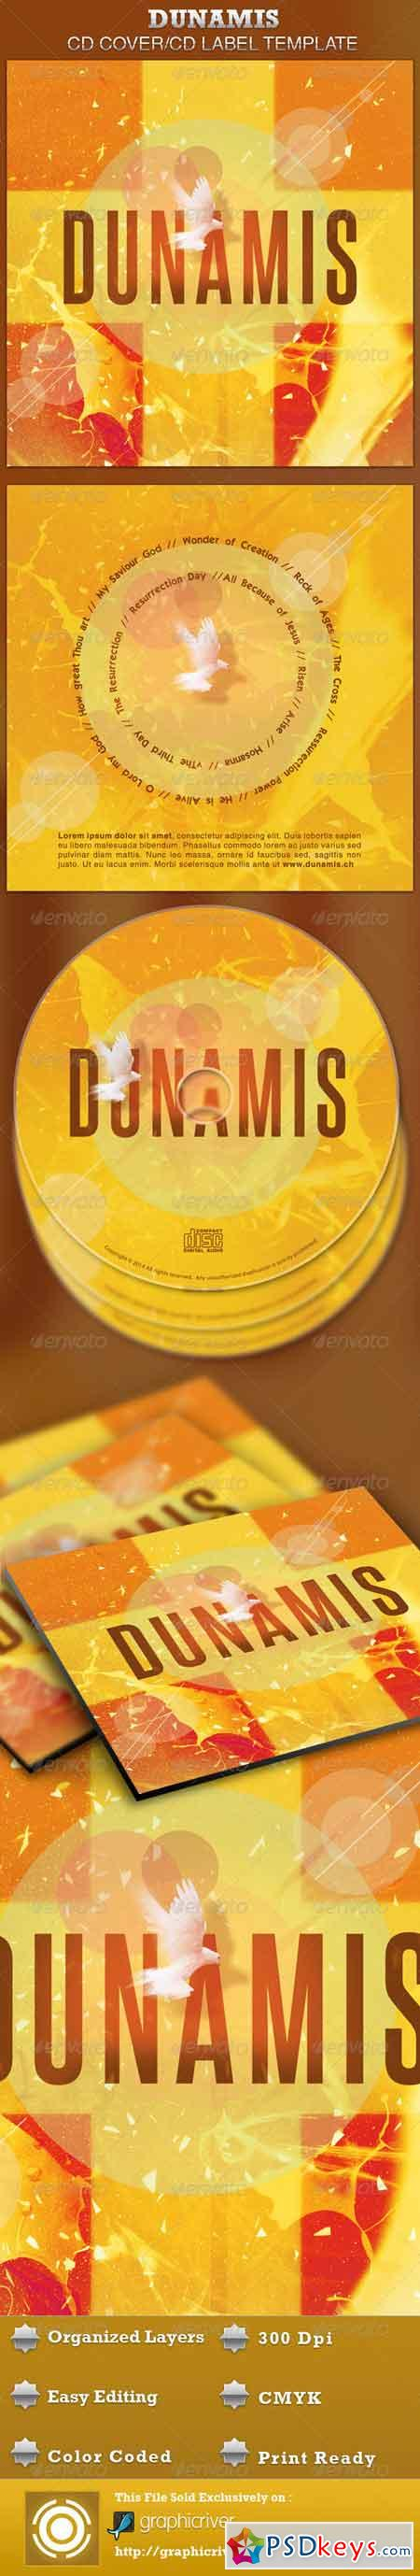 Dunamis CD Artwork Template 4278233